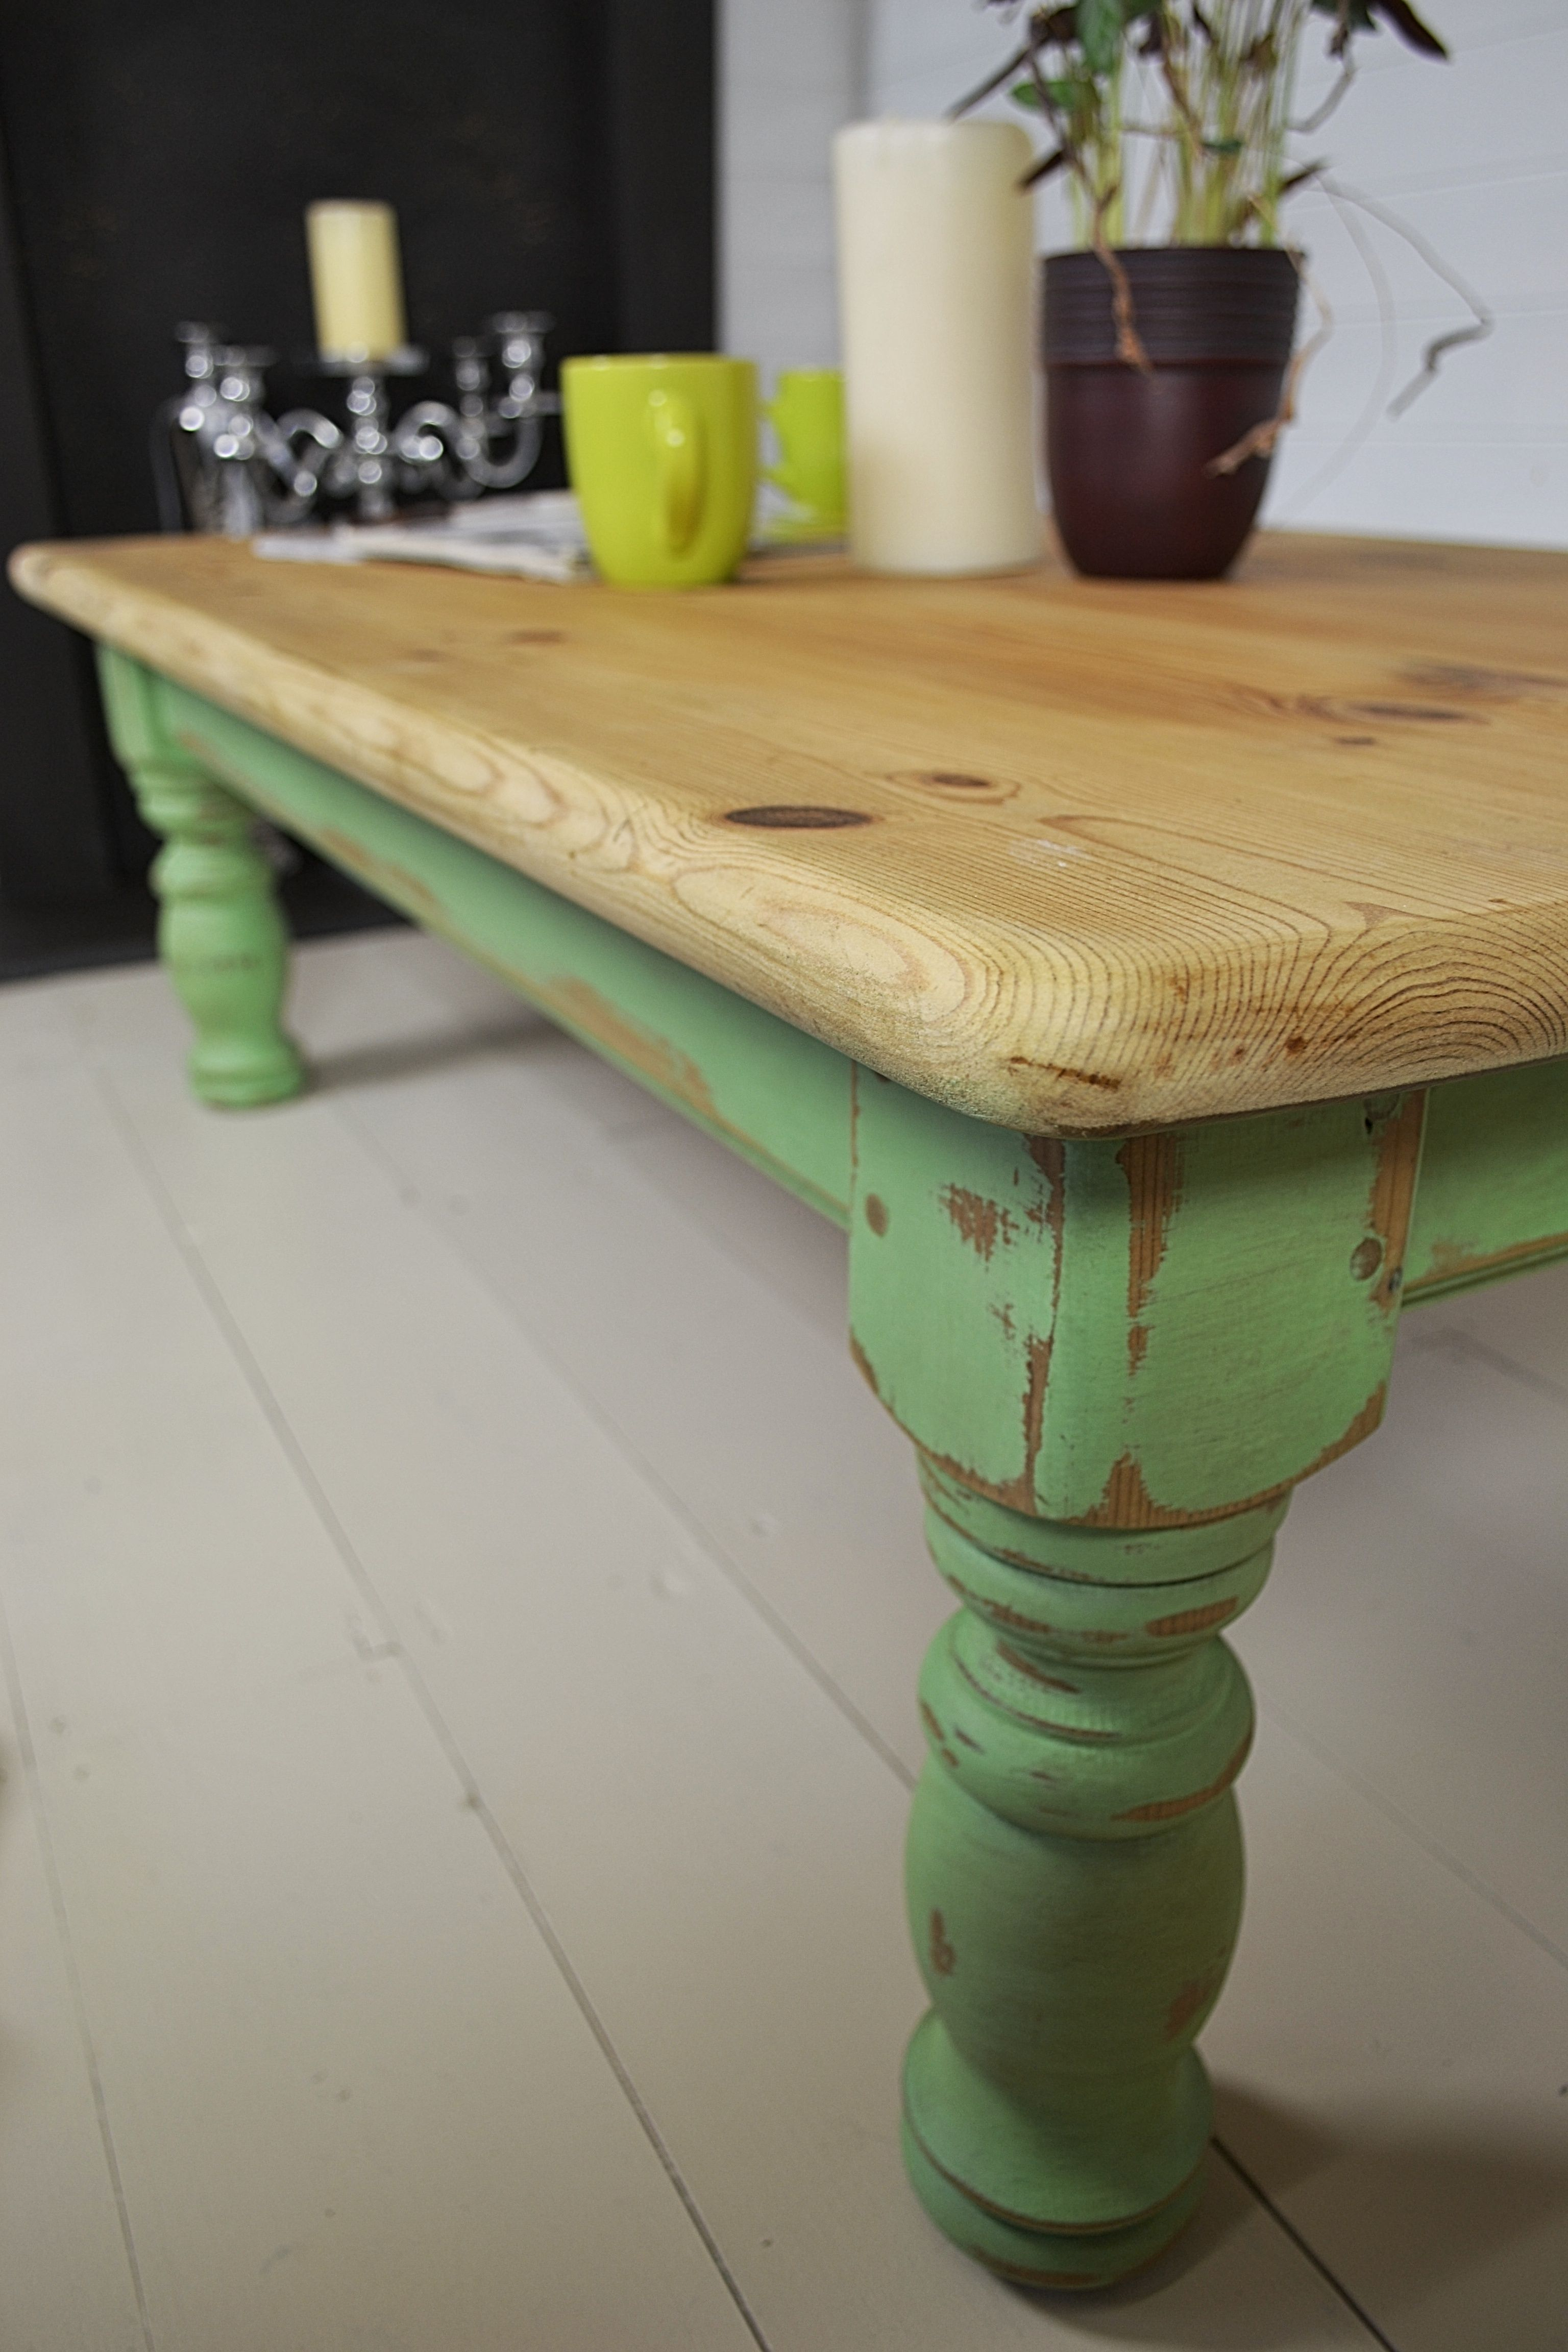 This antique pine coffee table really has rustic charm with its